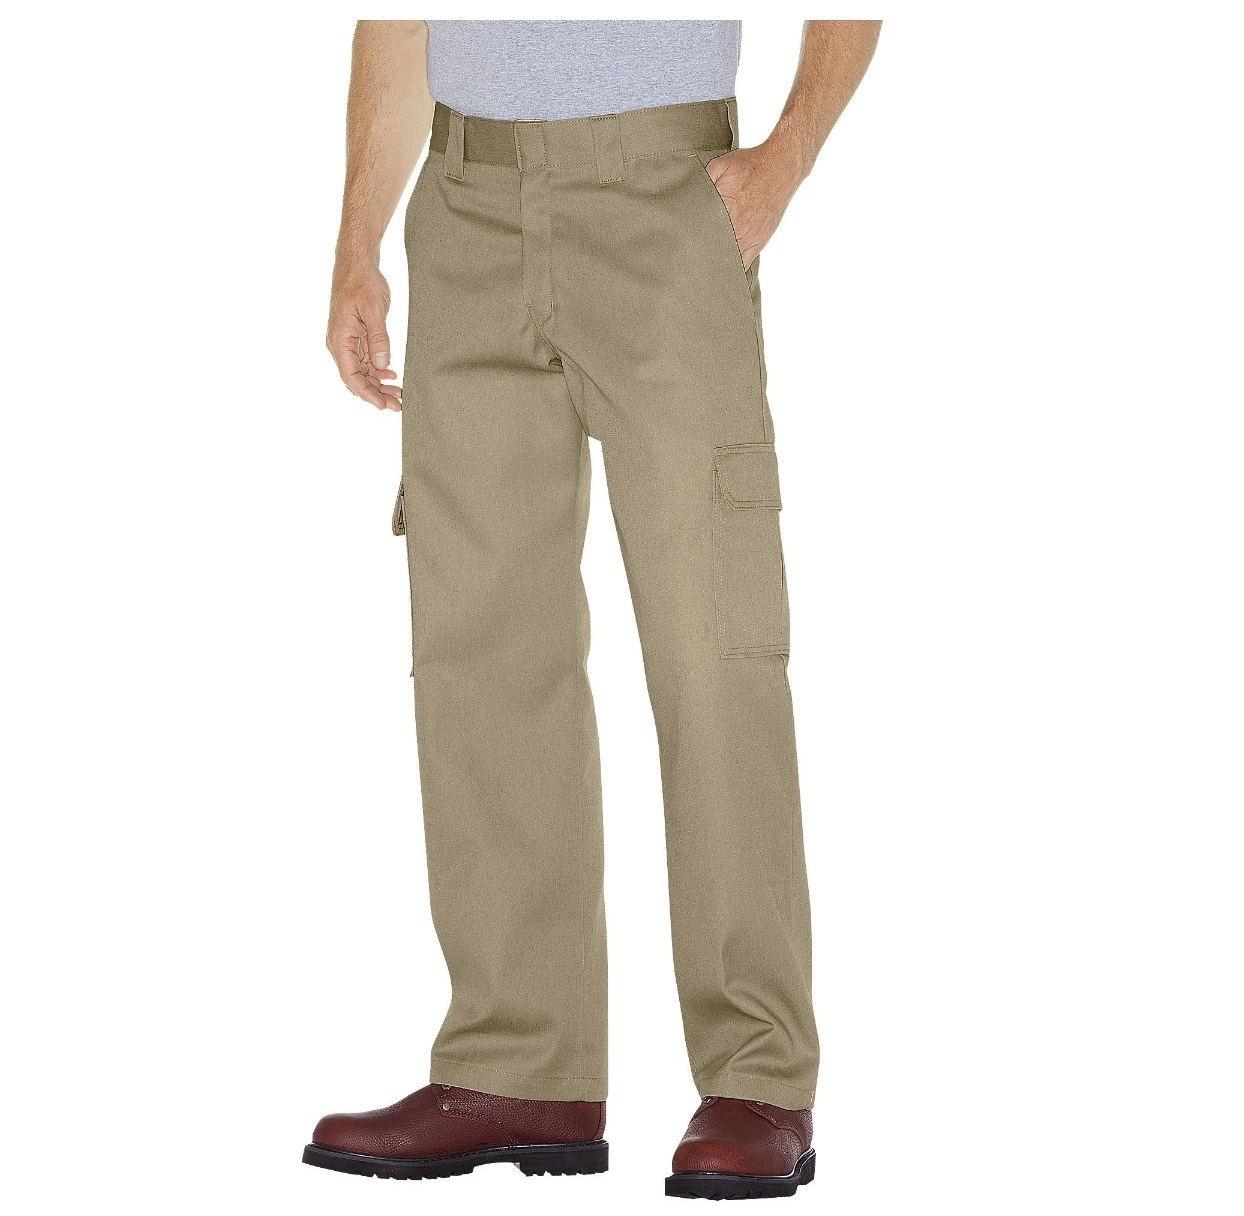 Pantalon Dickies Cargo Arena Dealer Skate Shop